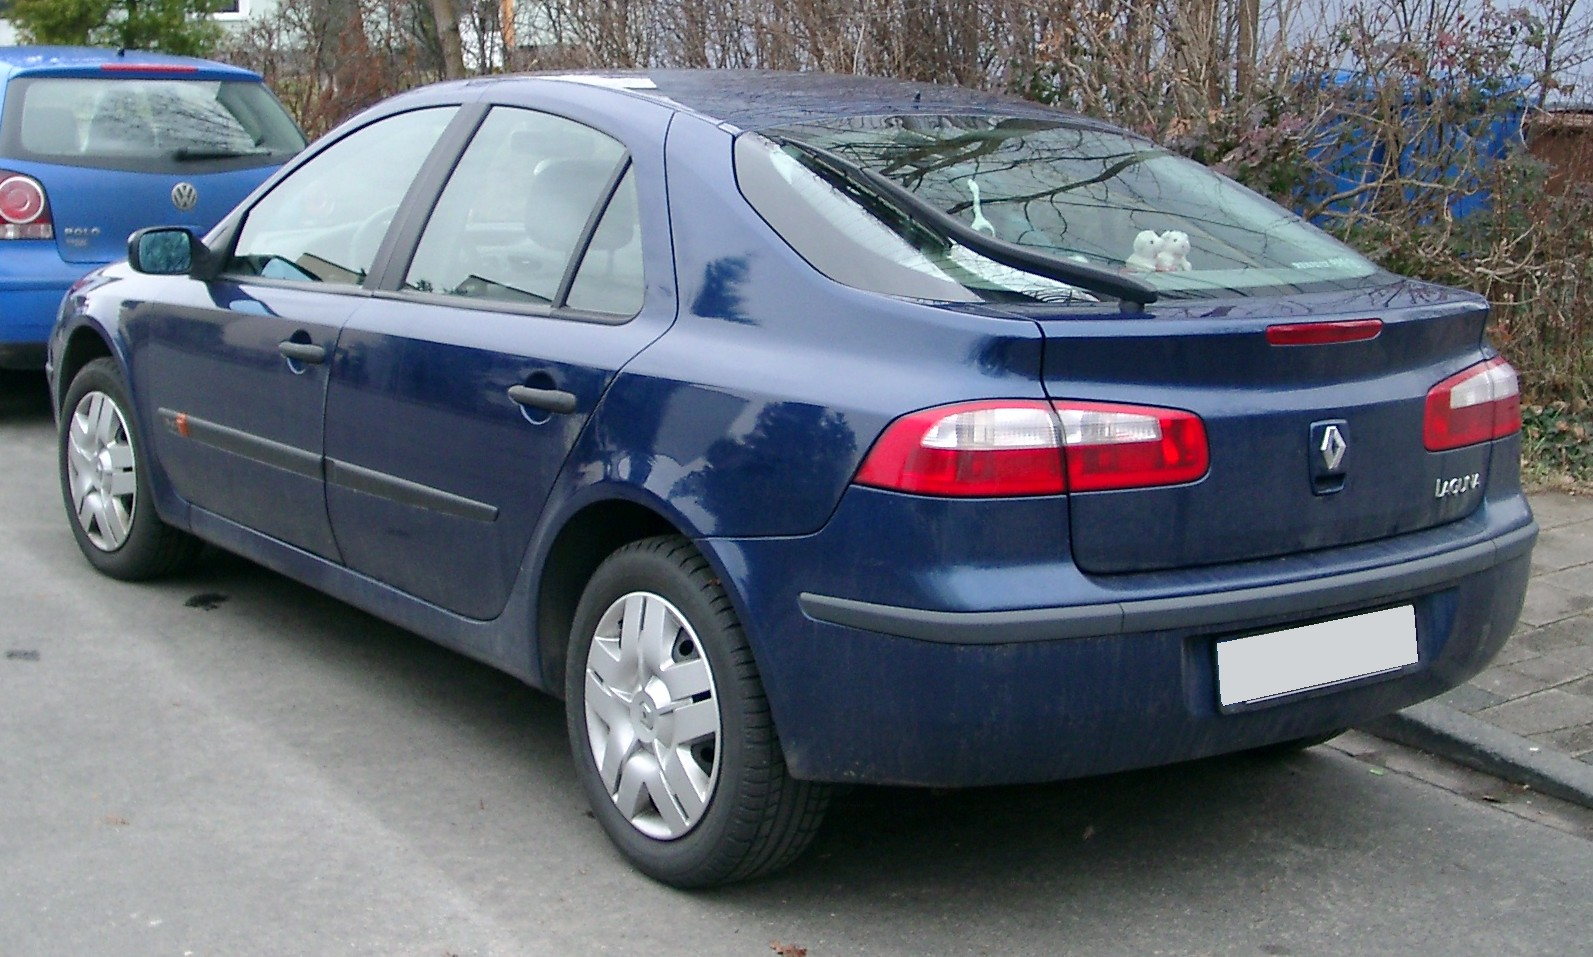 file renault laguna rear wikimedia commons. Black Bedroom Furniture Sets. Home Design Ideas